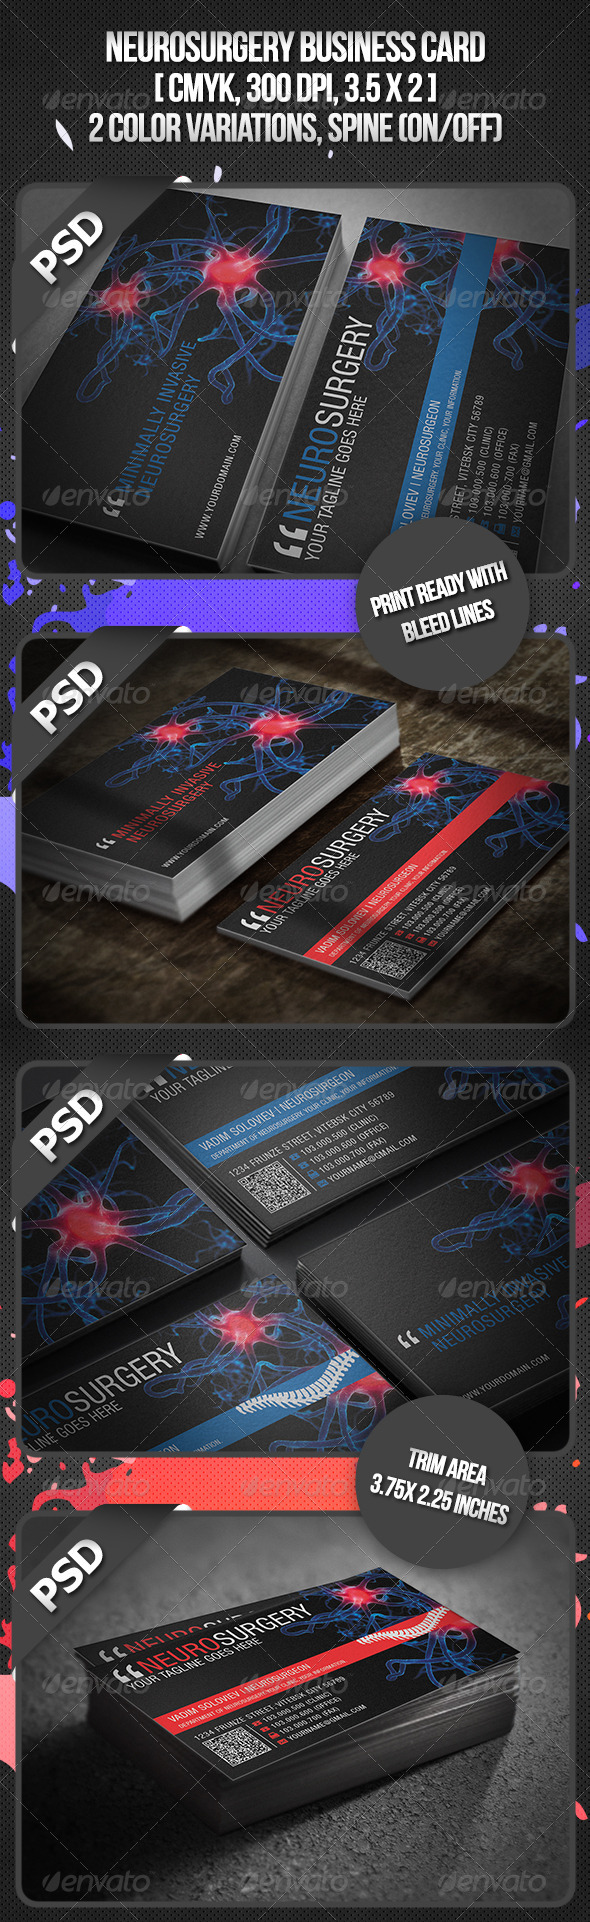 GraphicRiver Neurosurgery Business Card 3498390